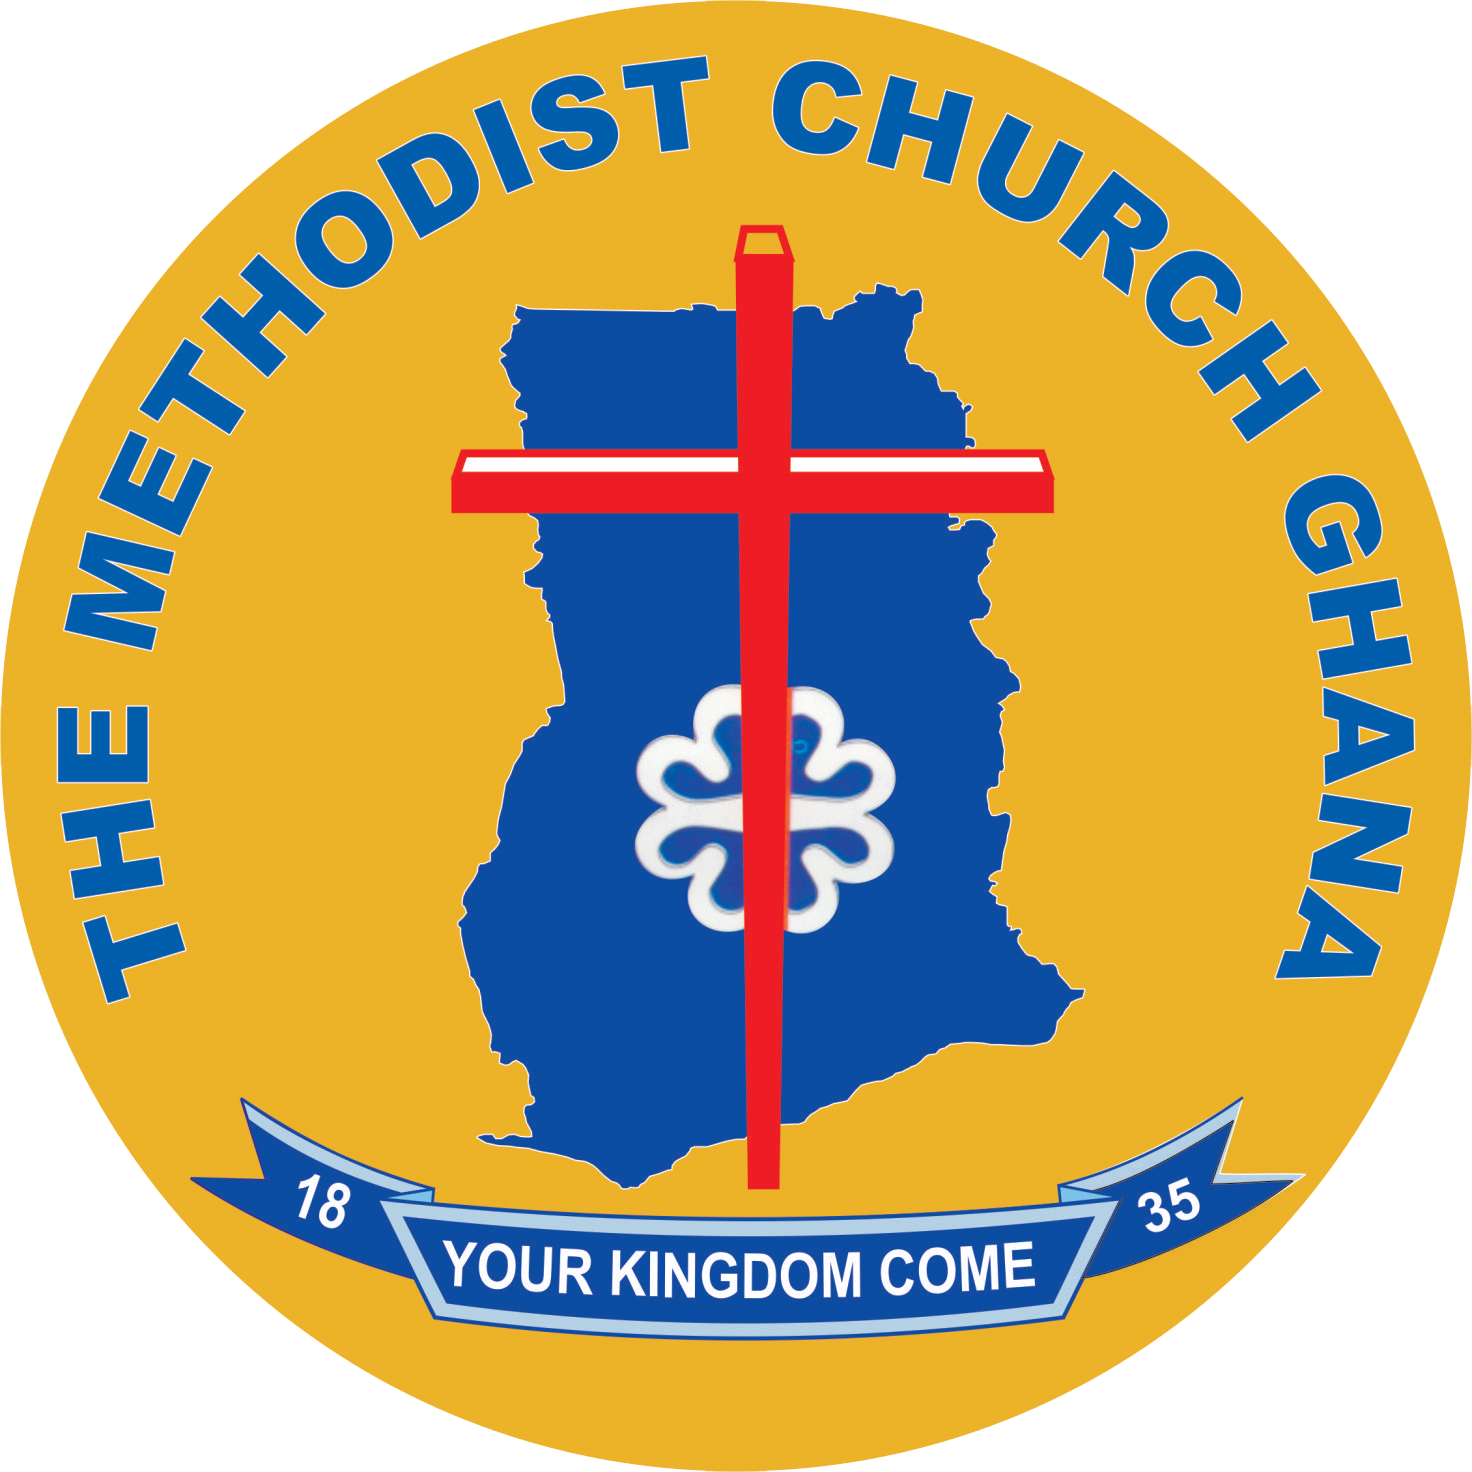 The Methodist Church Ghana